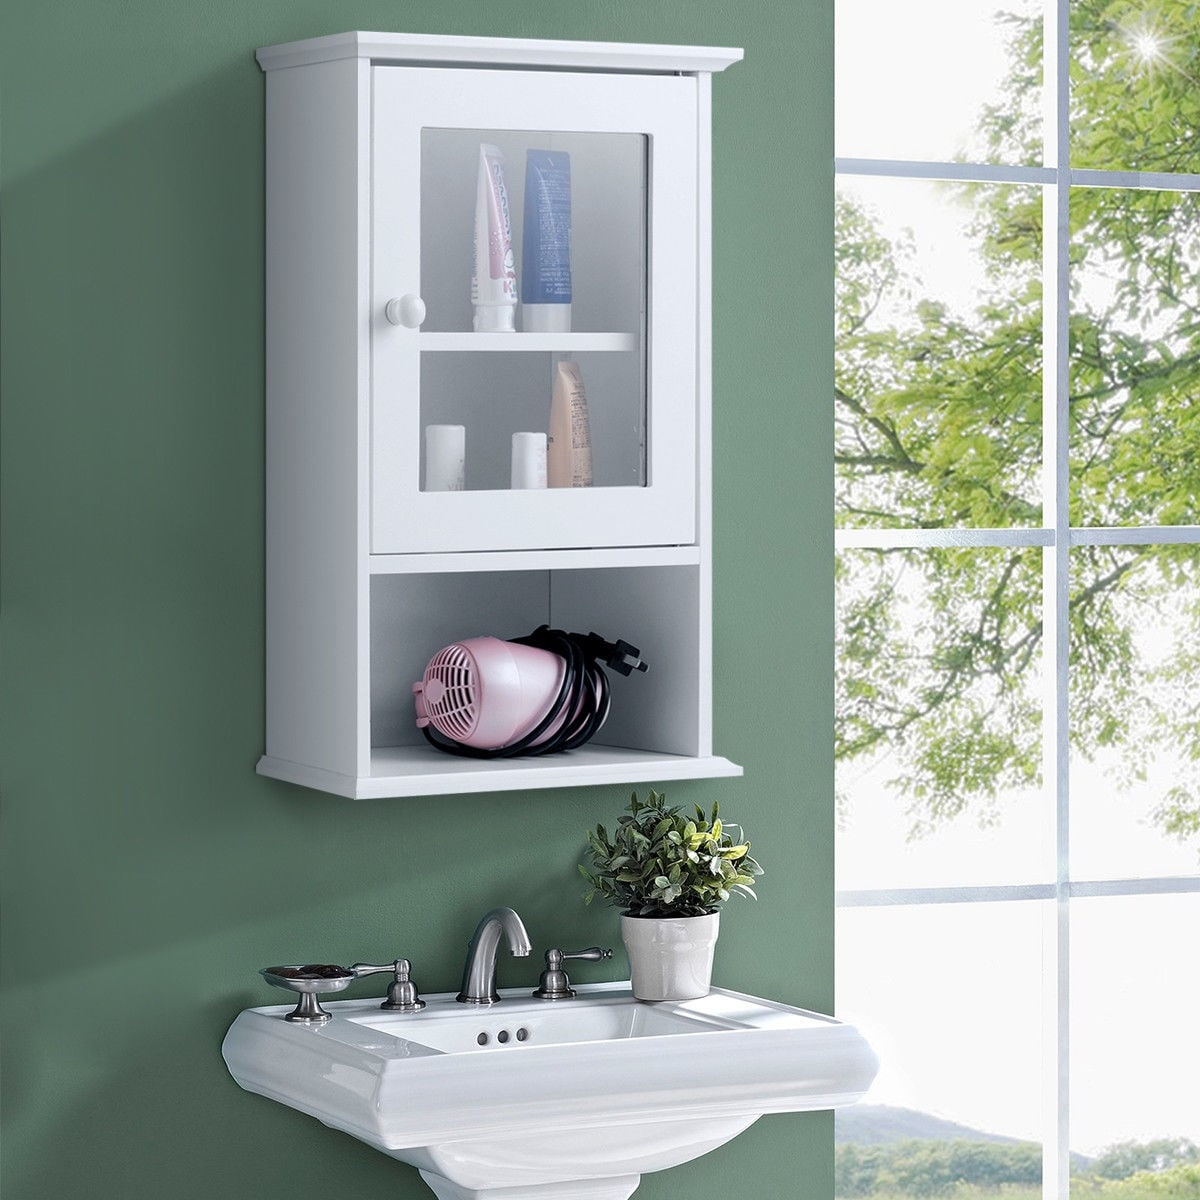 Gymax Wall Mounted Bathroom Cabinet Storage Organize Hanging Medicine Adjule Shelf